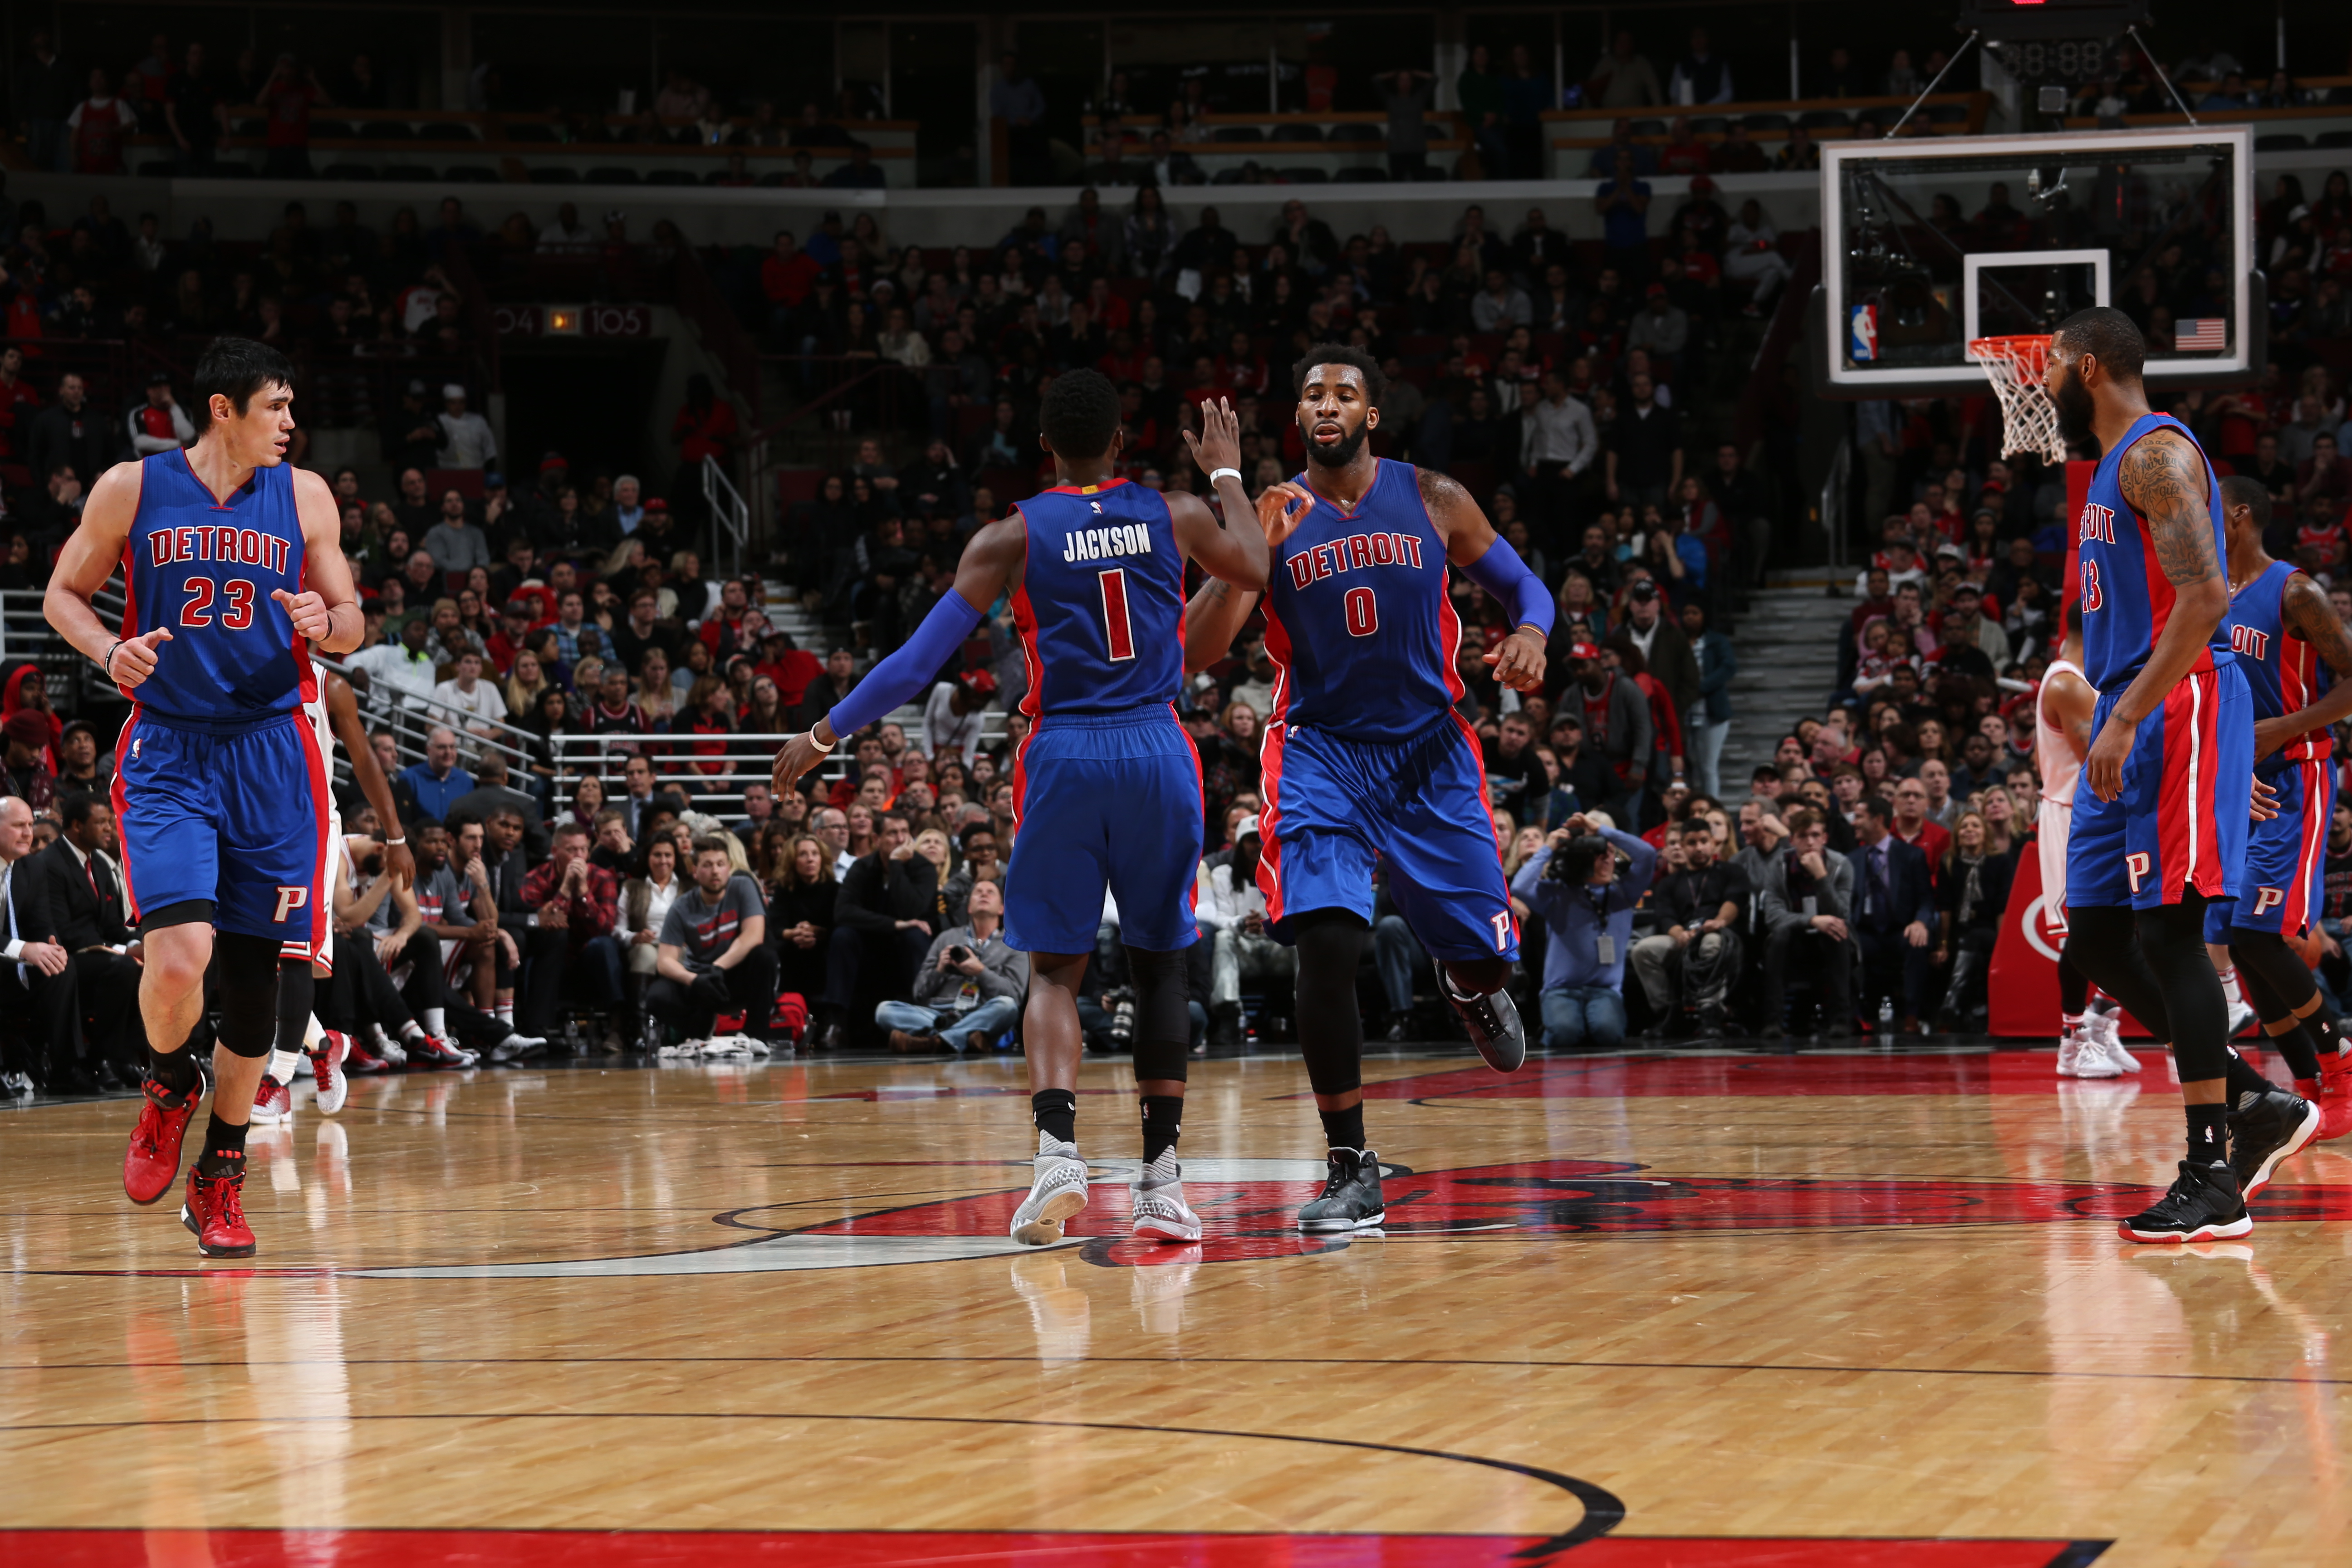 CHICAGO, IL - DECEMBER 18:  Reggie Jackson #1 of the Detroit Pistons high fives Andre Drummond #0 of the Detroit Pistons during the game against the Chicago Bulls on December 18, 2015 at the United Center in Chicago, Illinois. (Photo by Gary Dineen/NBAE v